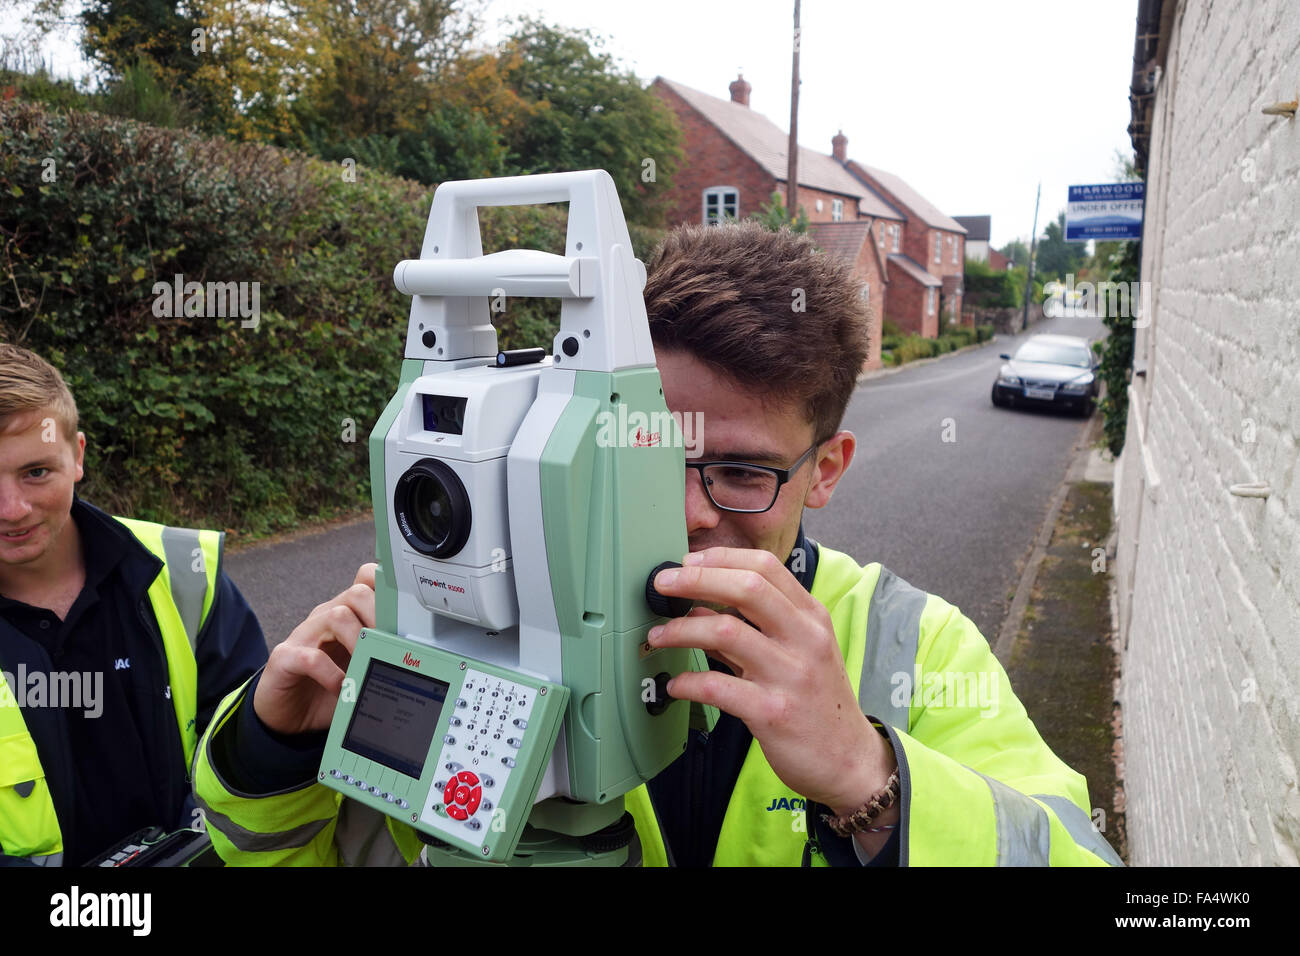 Surveyor using Leica pinpoint R1000 Optical Survey Equipment Uk - Stock Image